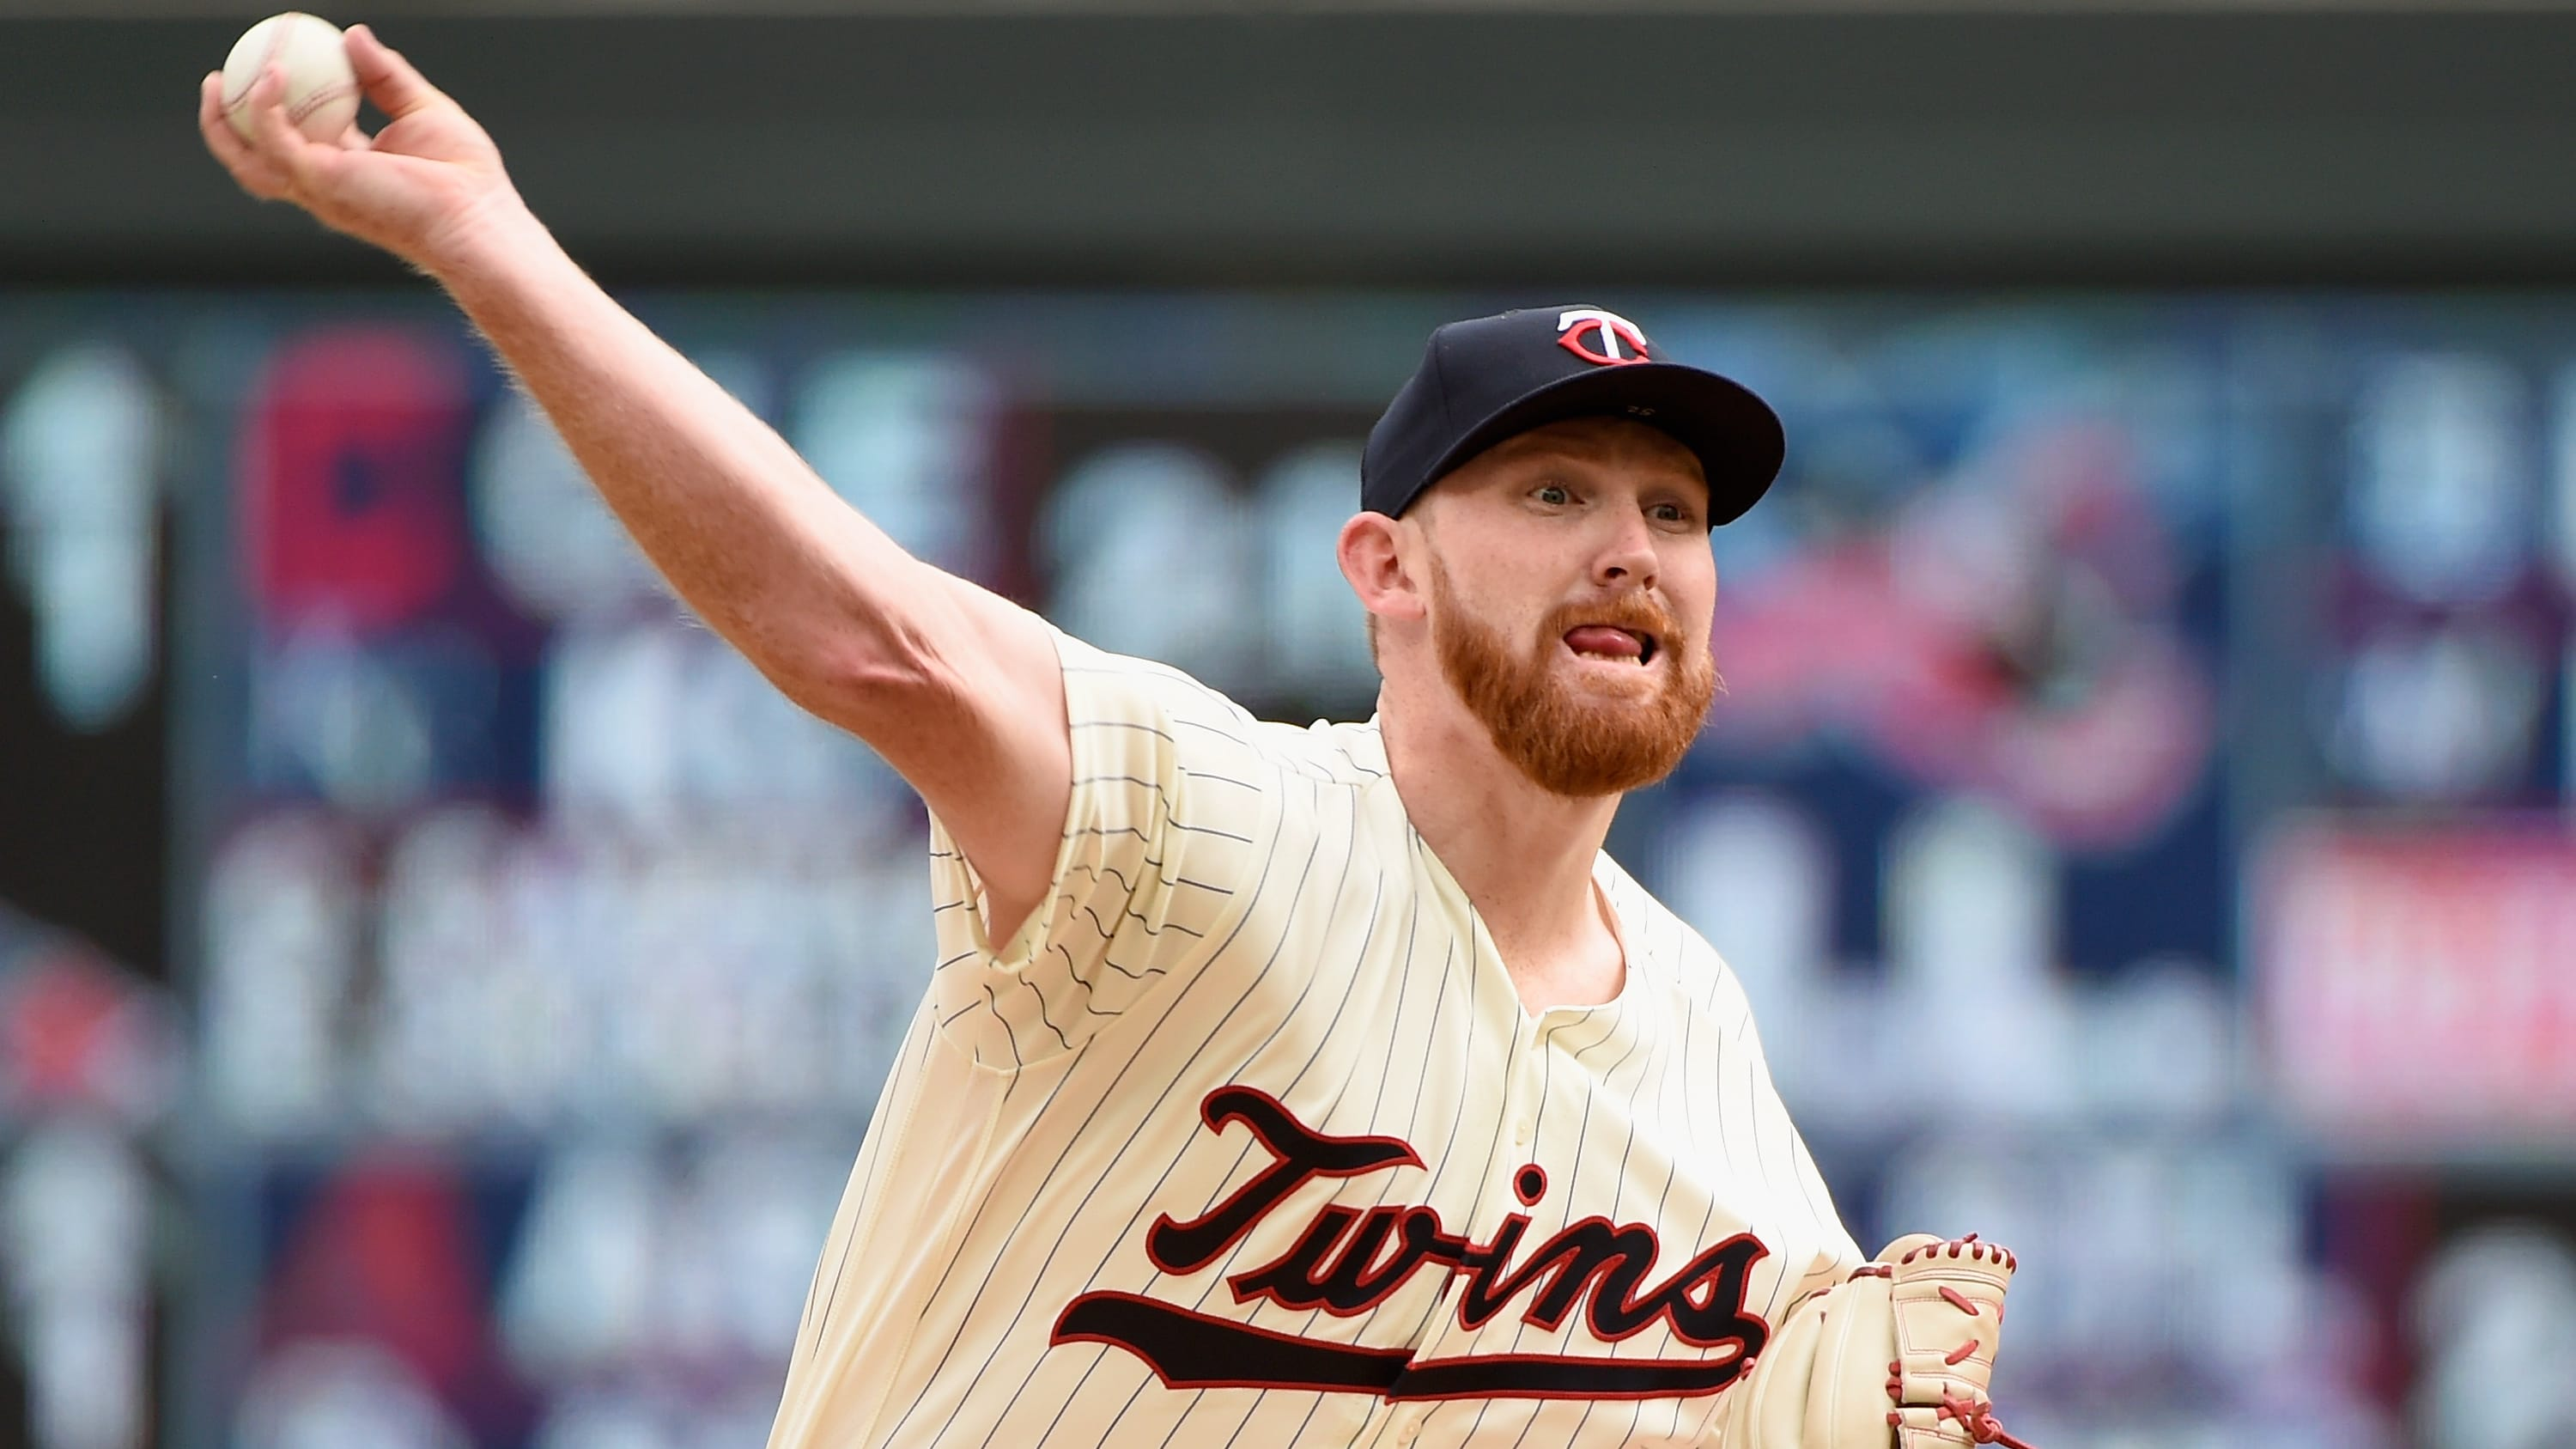 MINNEAPOLIS, MN - SEPTEMBER 30: Zack Littell #52 of the Minnesota Twins delivers a pitch against the Chicago White Sox during the first inning of the game on September 30, 2018 at Target Field in Minneapolis, Minnesota. (Photo by Hannah Foslien/Getty Images)